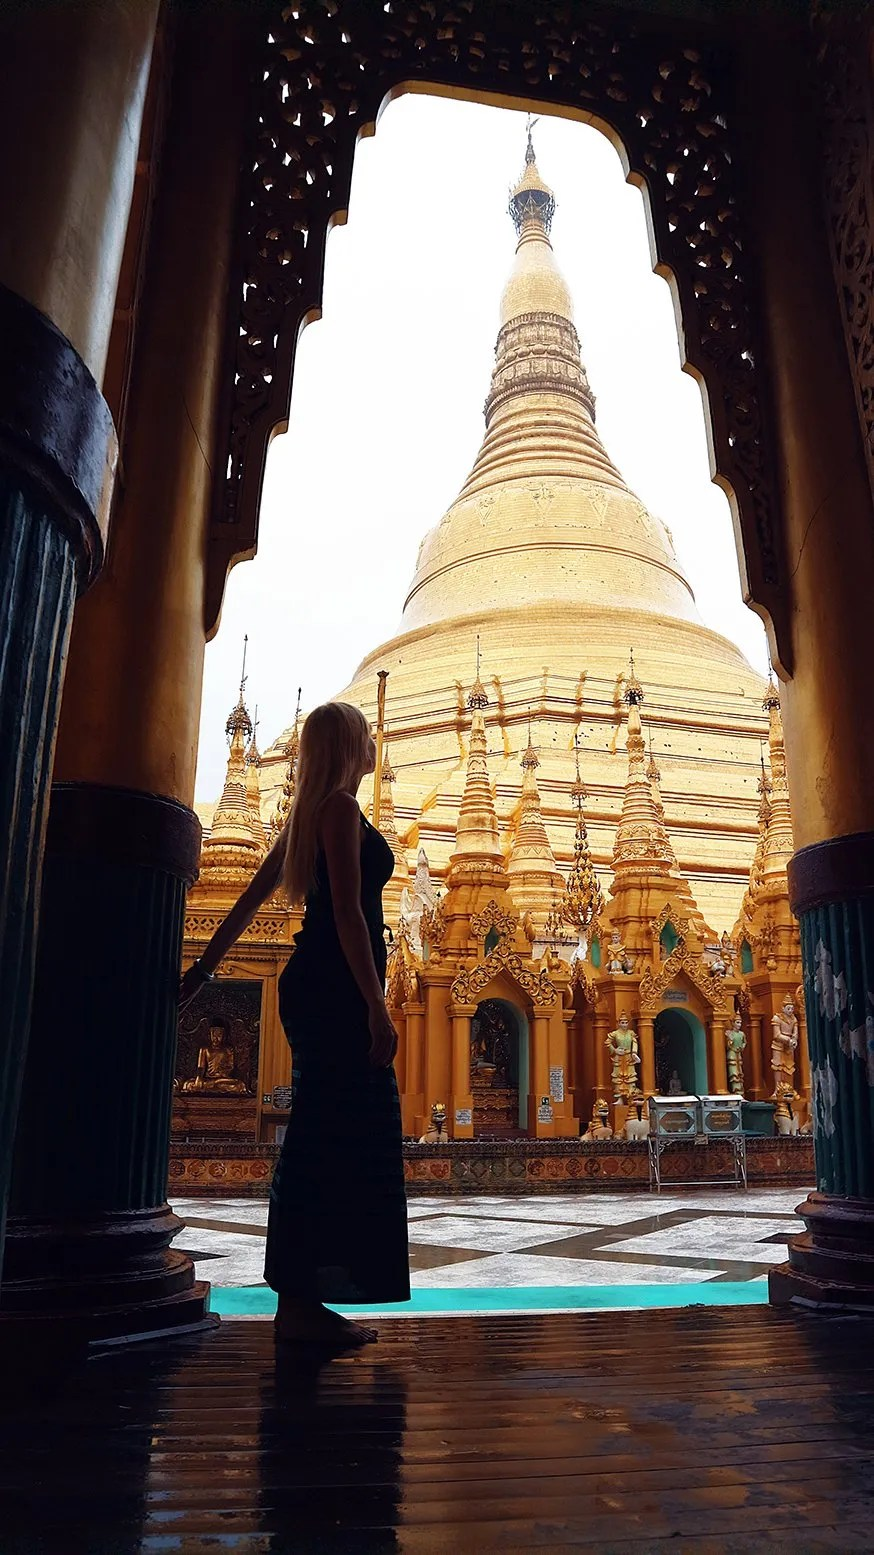 My personal top 5 of must do's in Myanmar